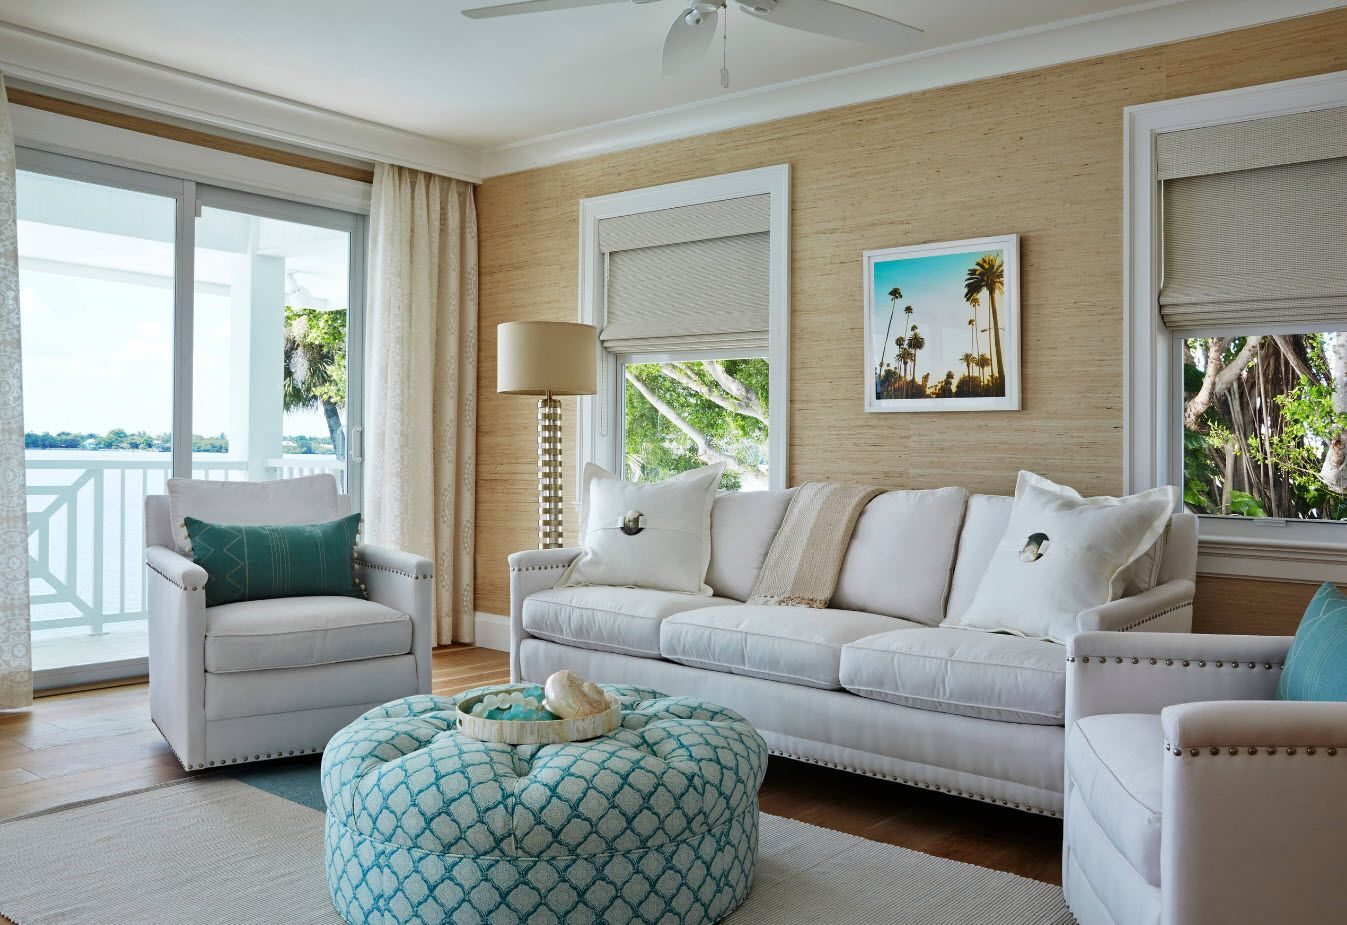 White Classic interior if the sitting room with beige walls